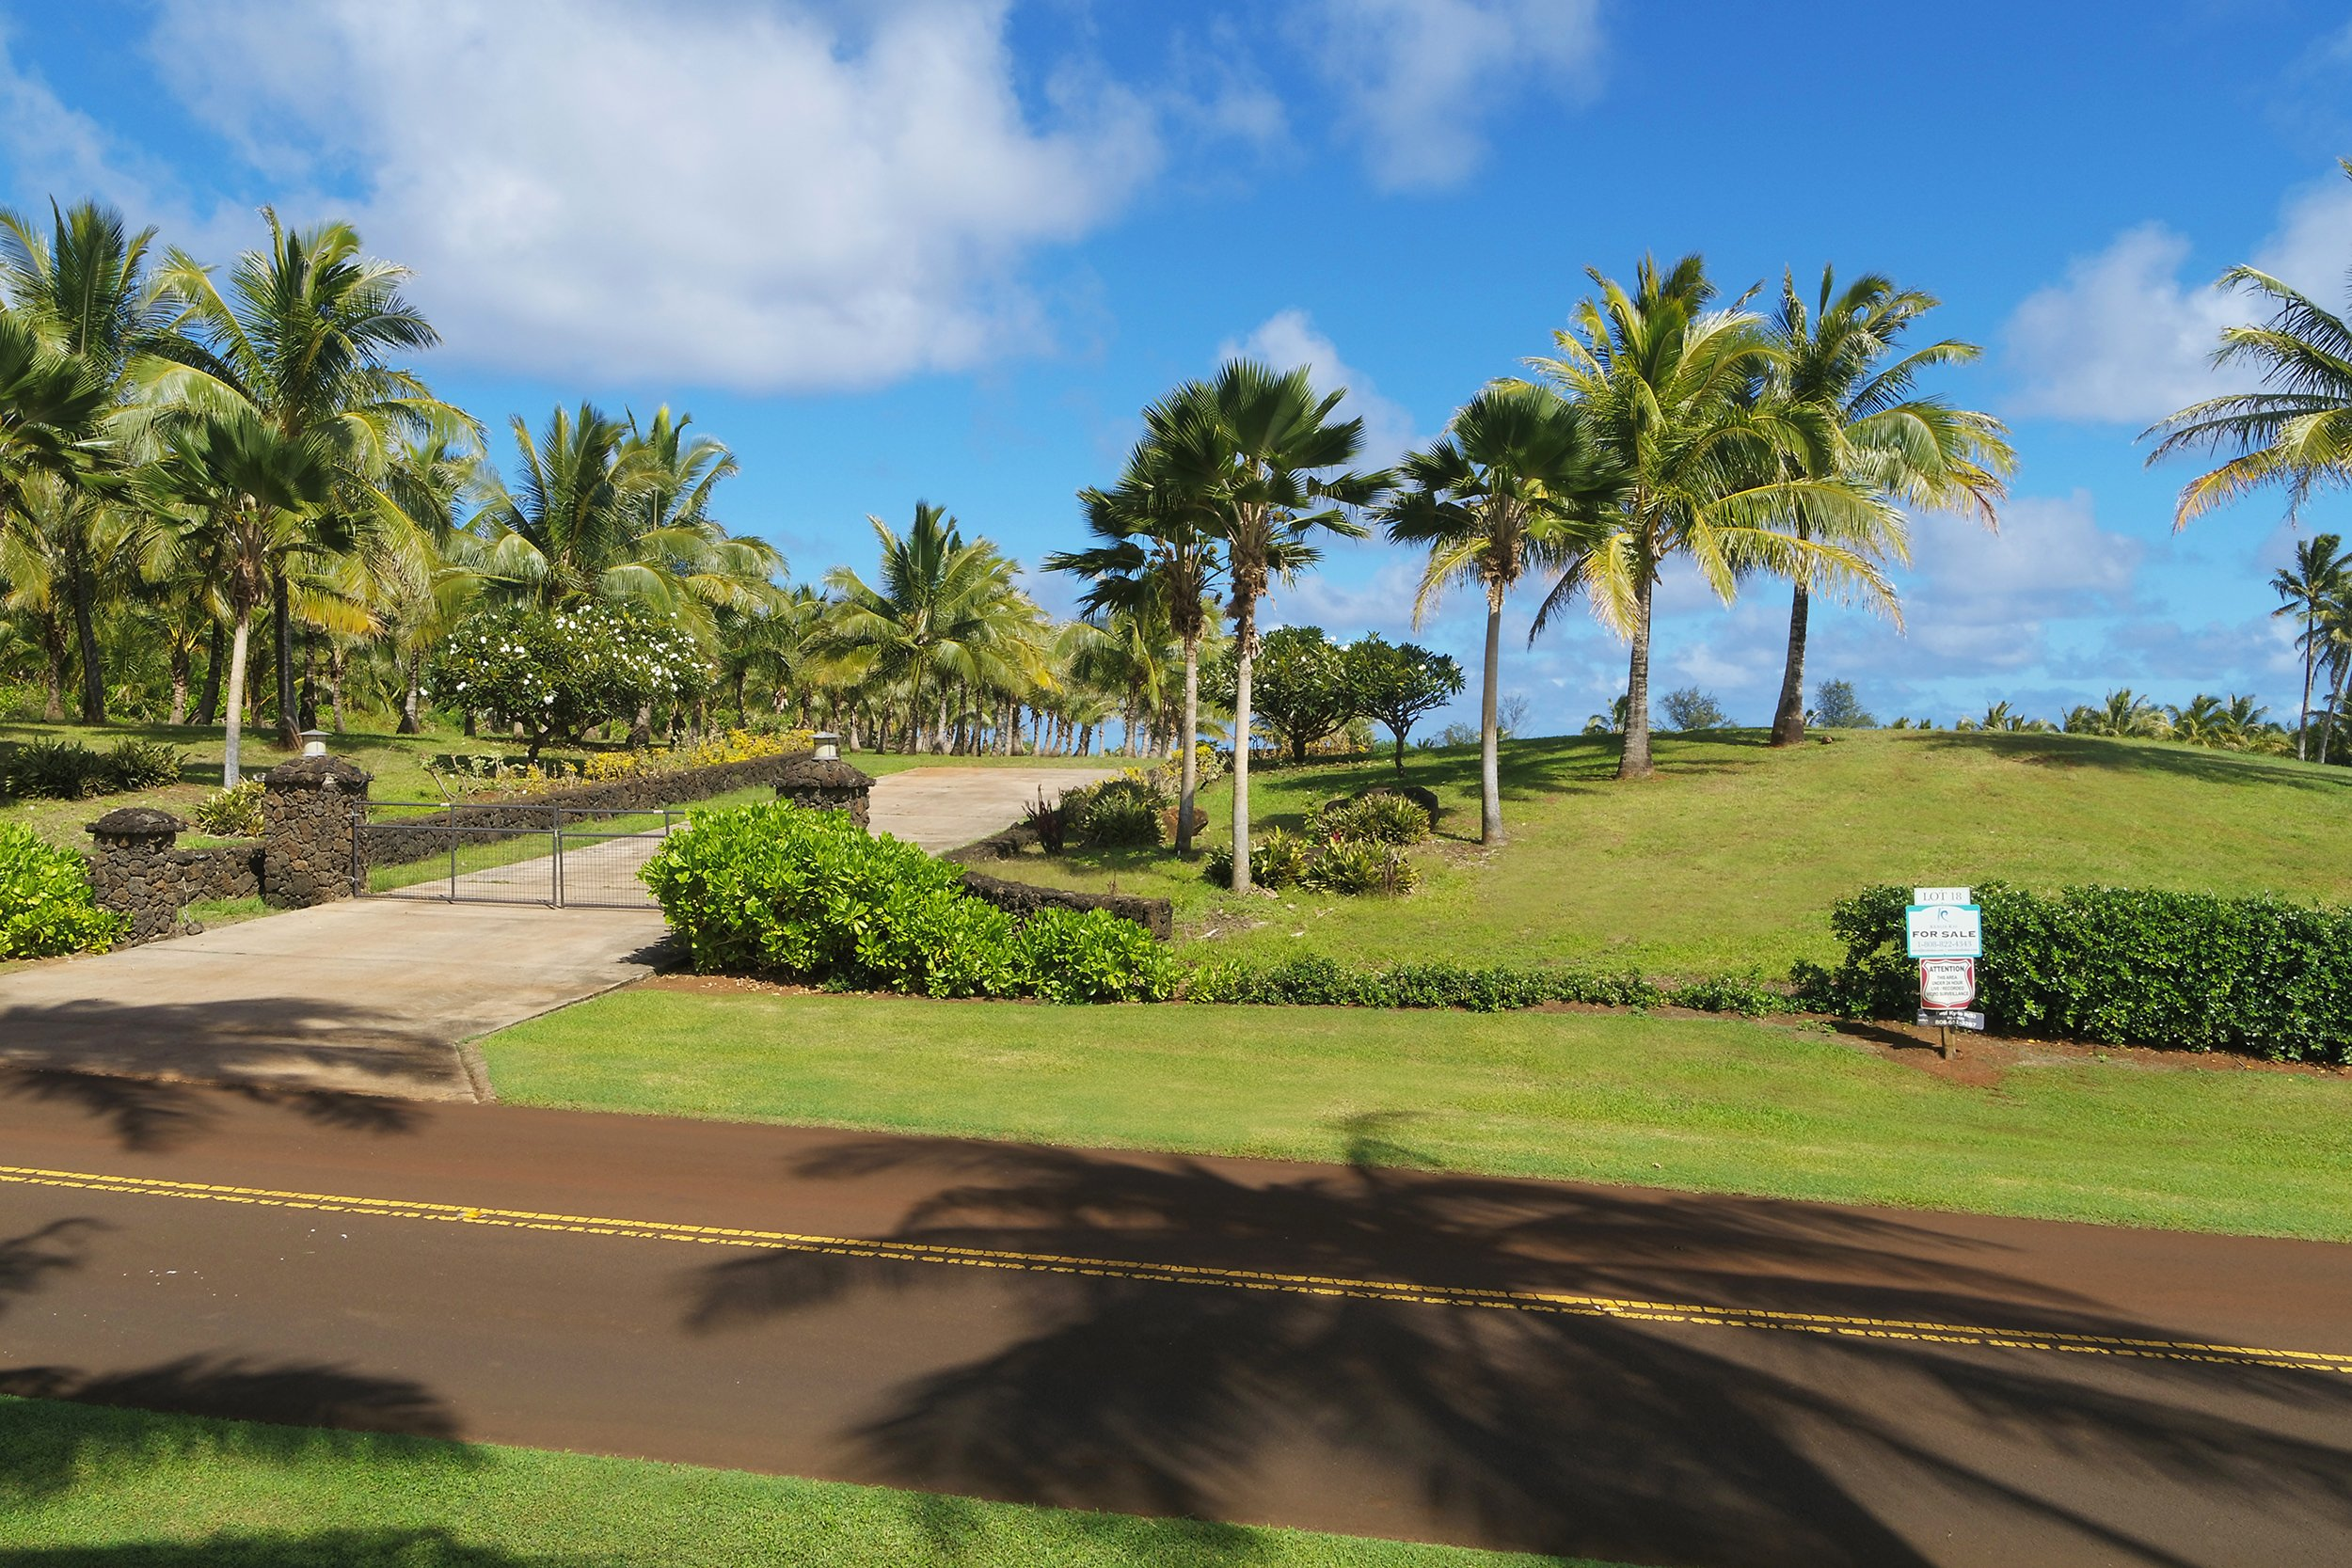 Street view shot of lot 18 of Kealia Kai on Kauai - Project Broker is Hannah Sirois